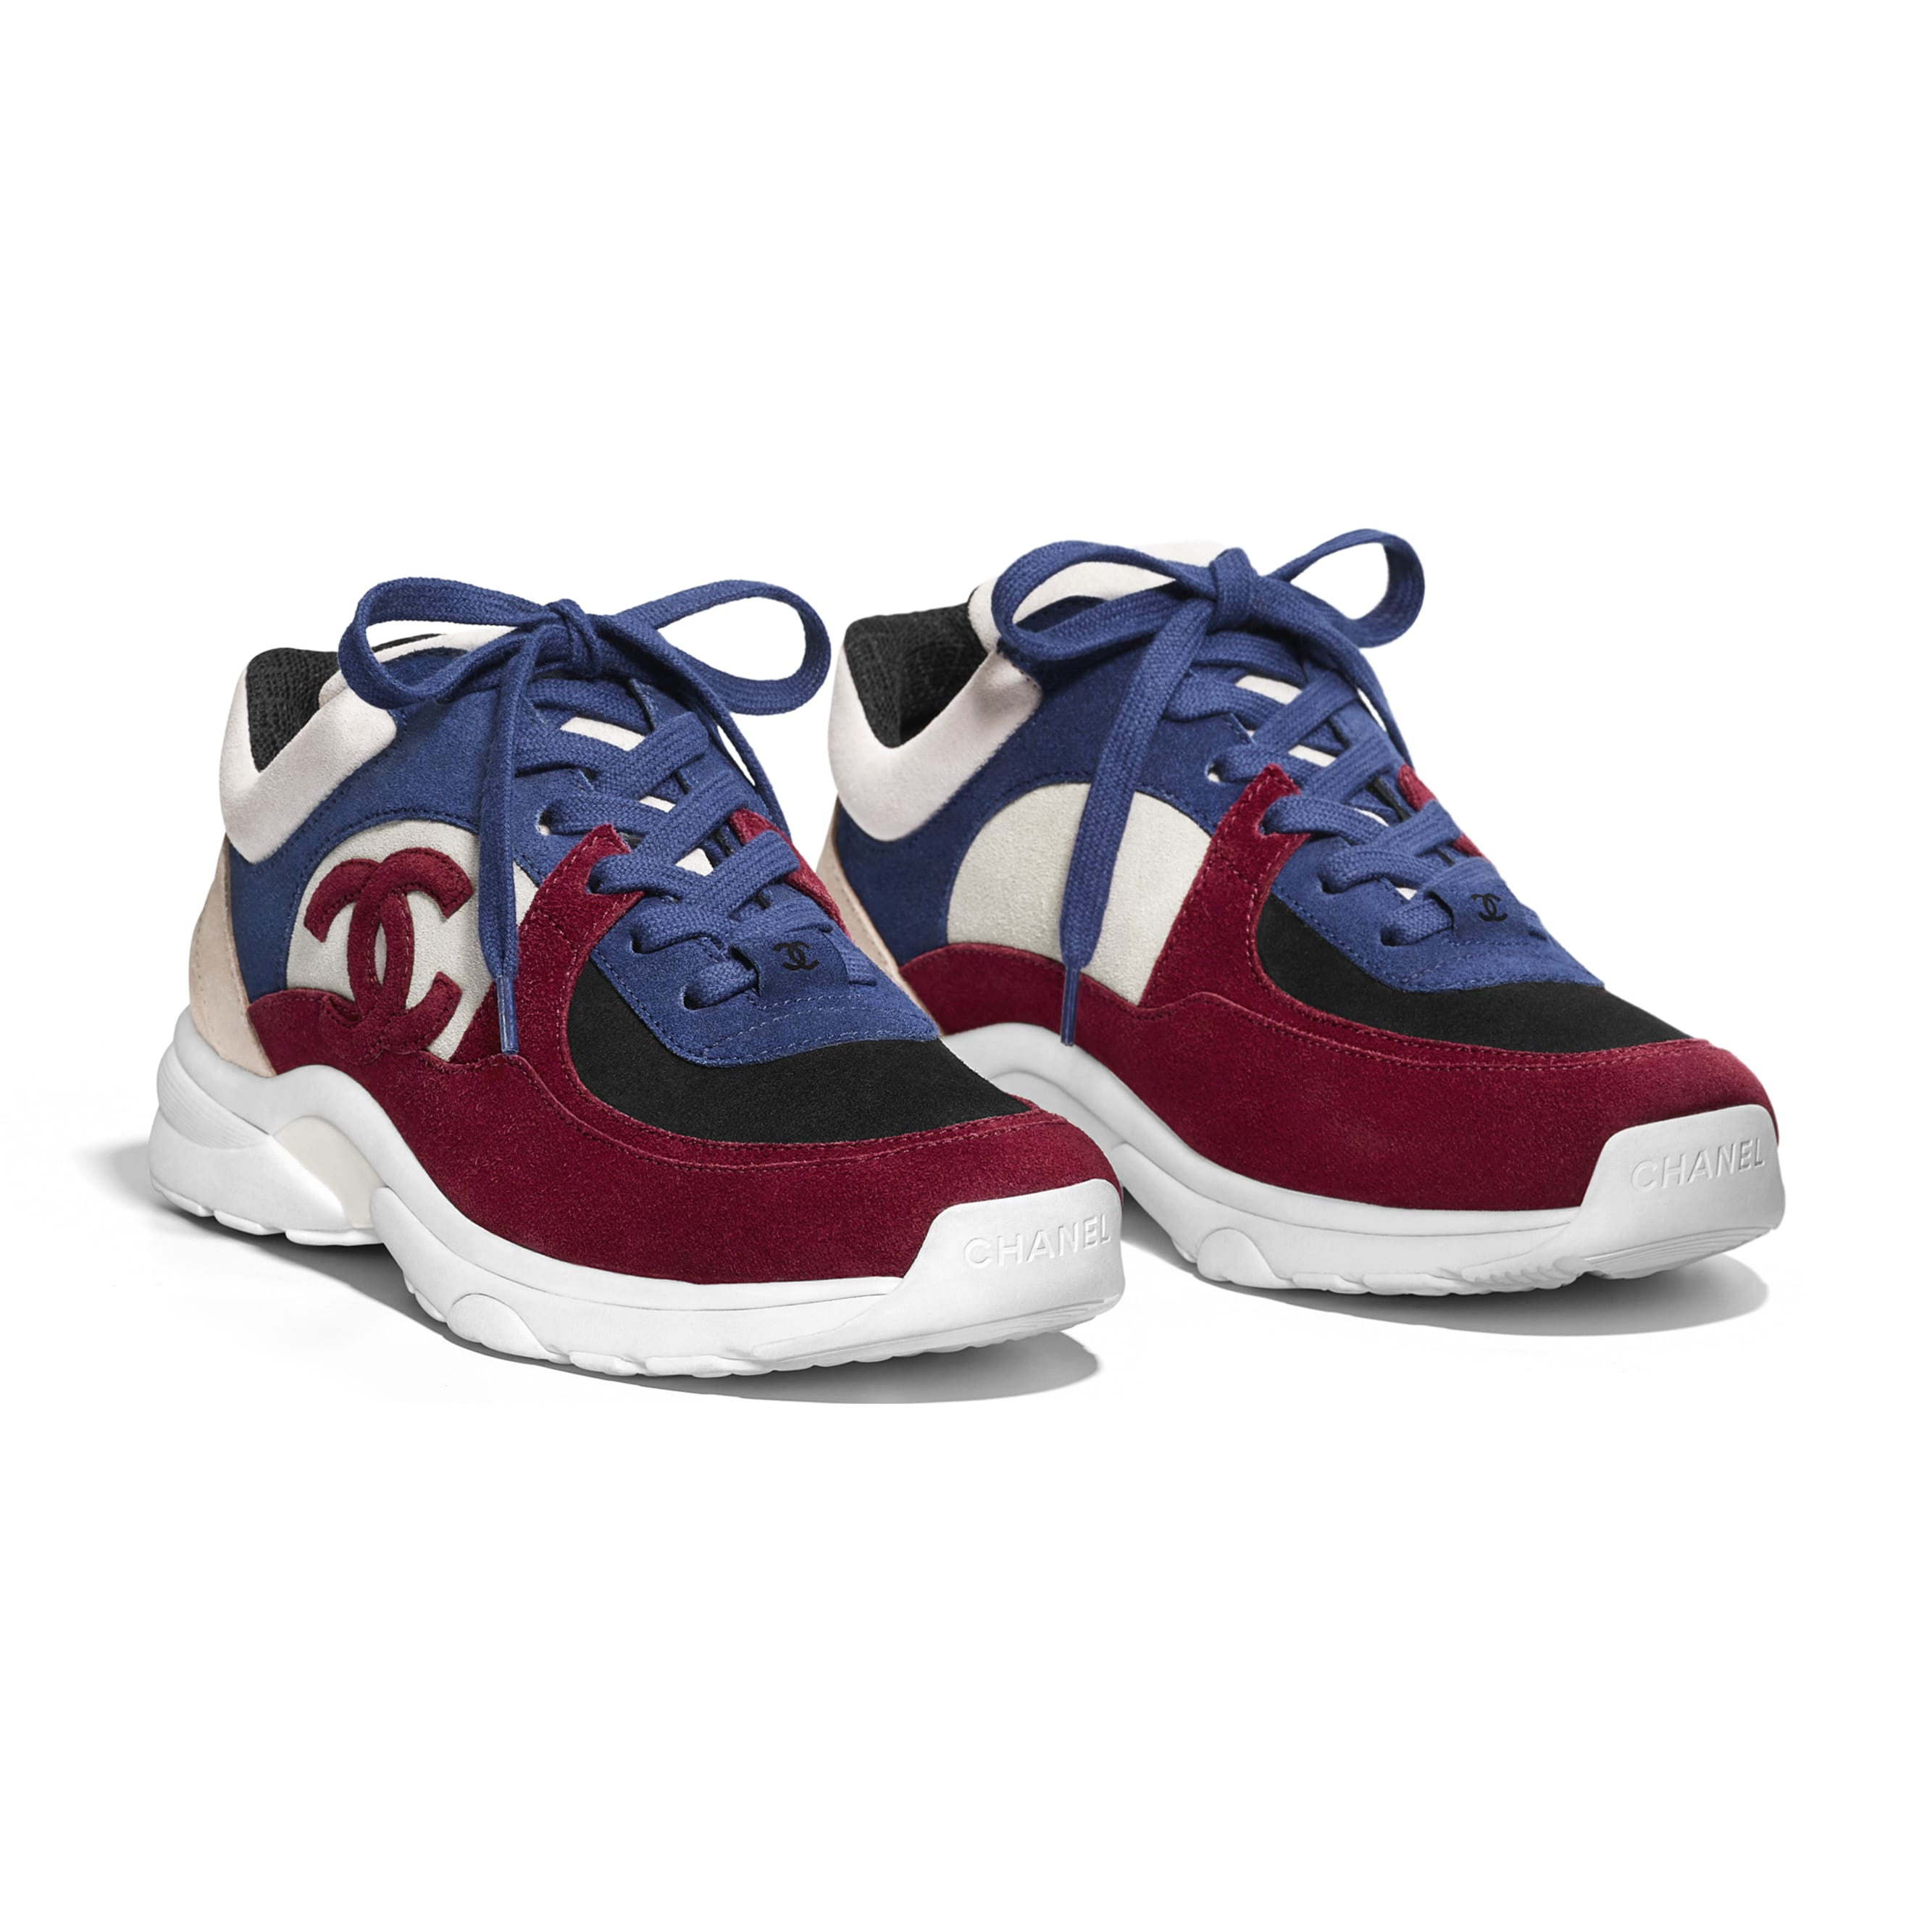 Sneakers - Navy Blue & Red - Suede Calfskin - Alternative view - see standard sized version